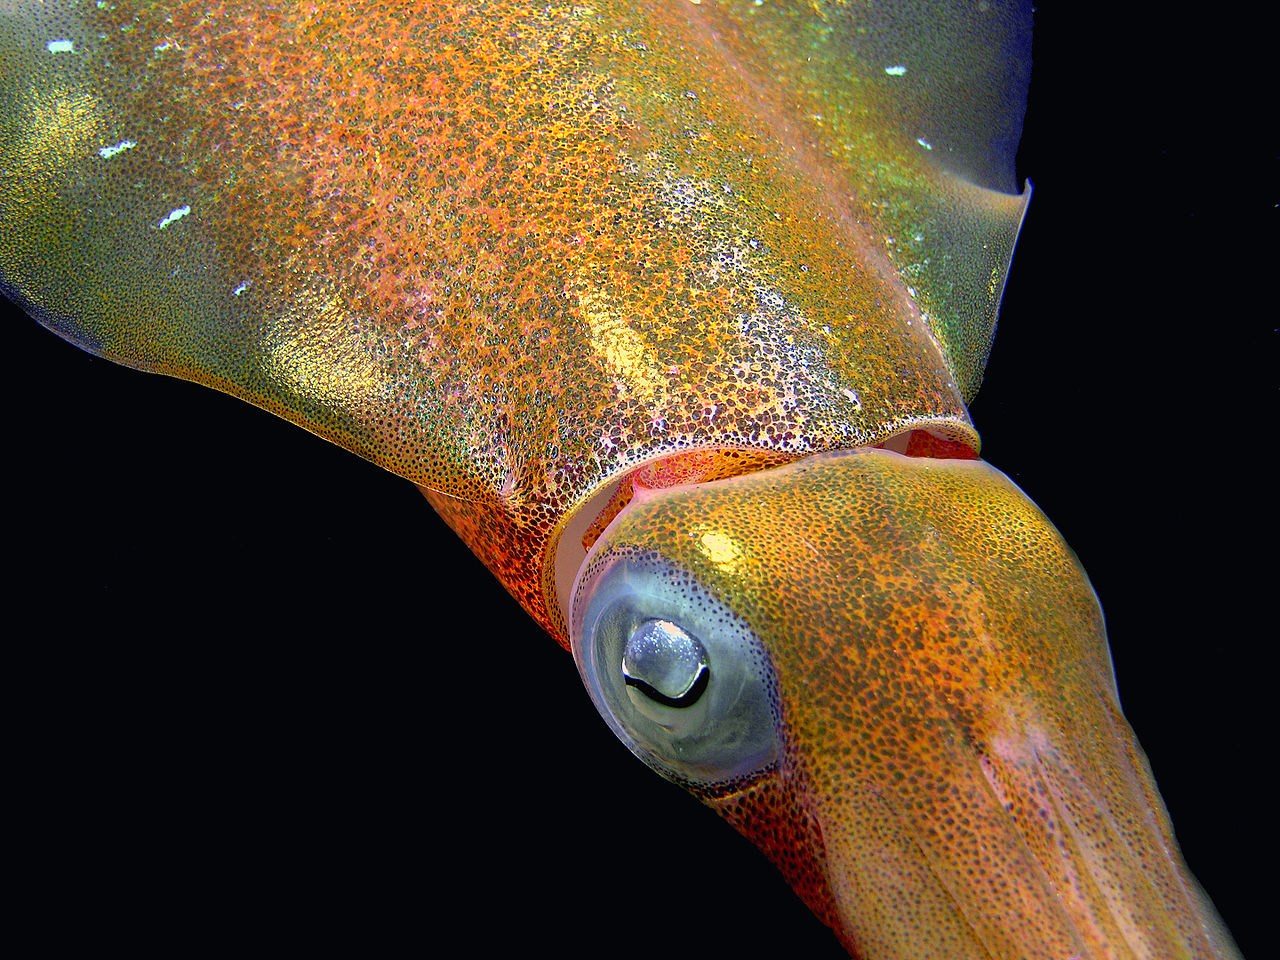 Close-up of a Caribbean reef squid